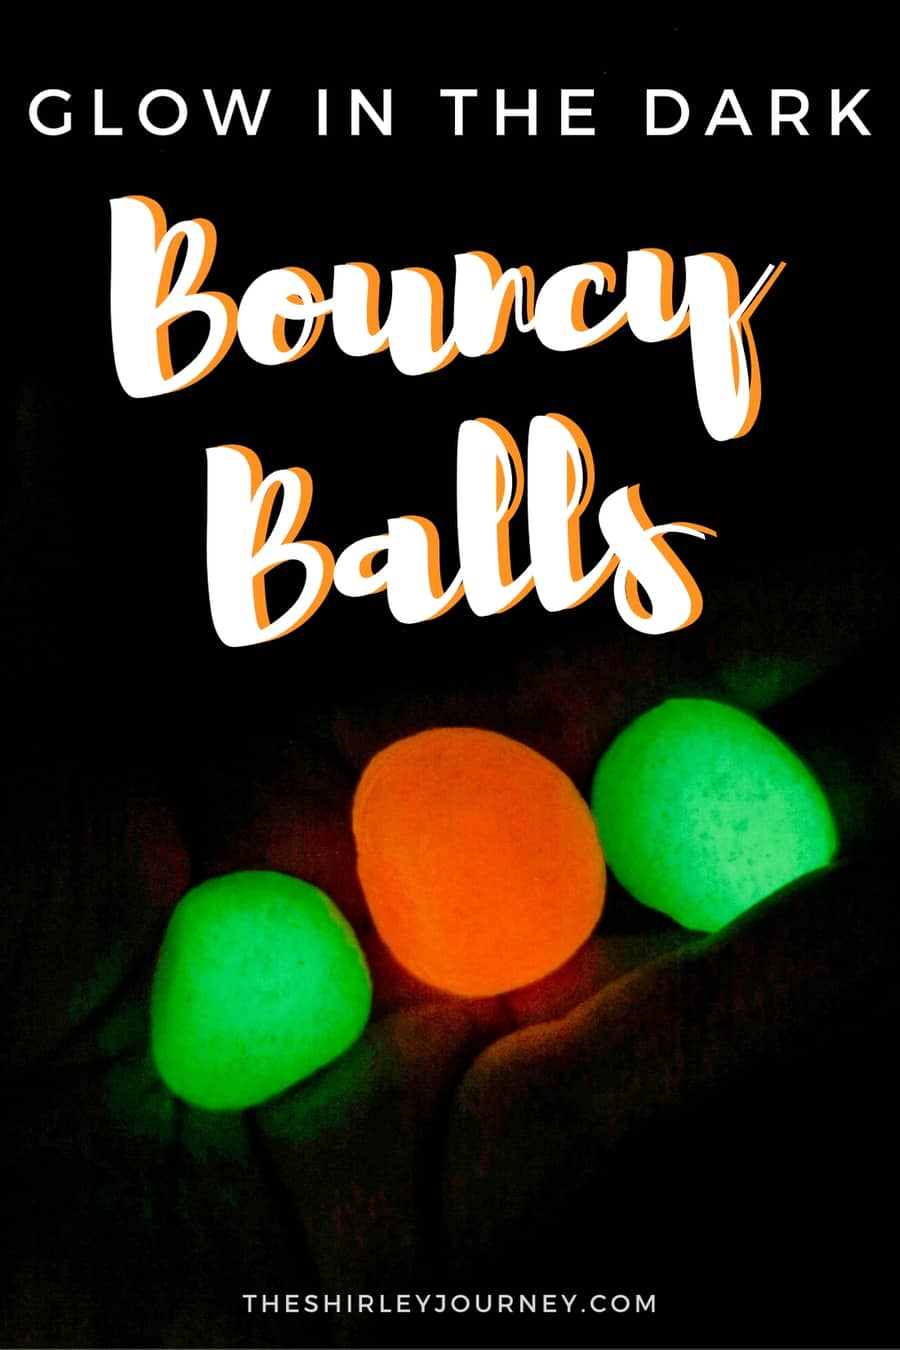 Glow in the dark bouncy balls in someone's hand with title overlay